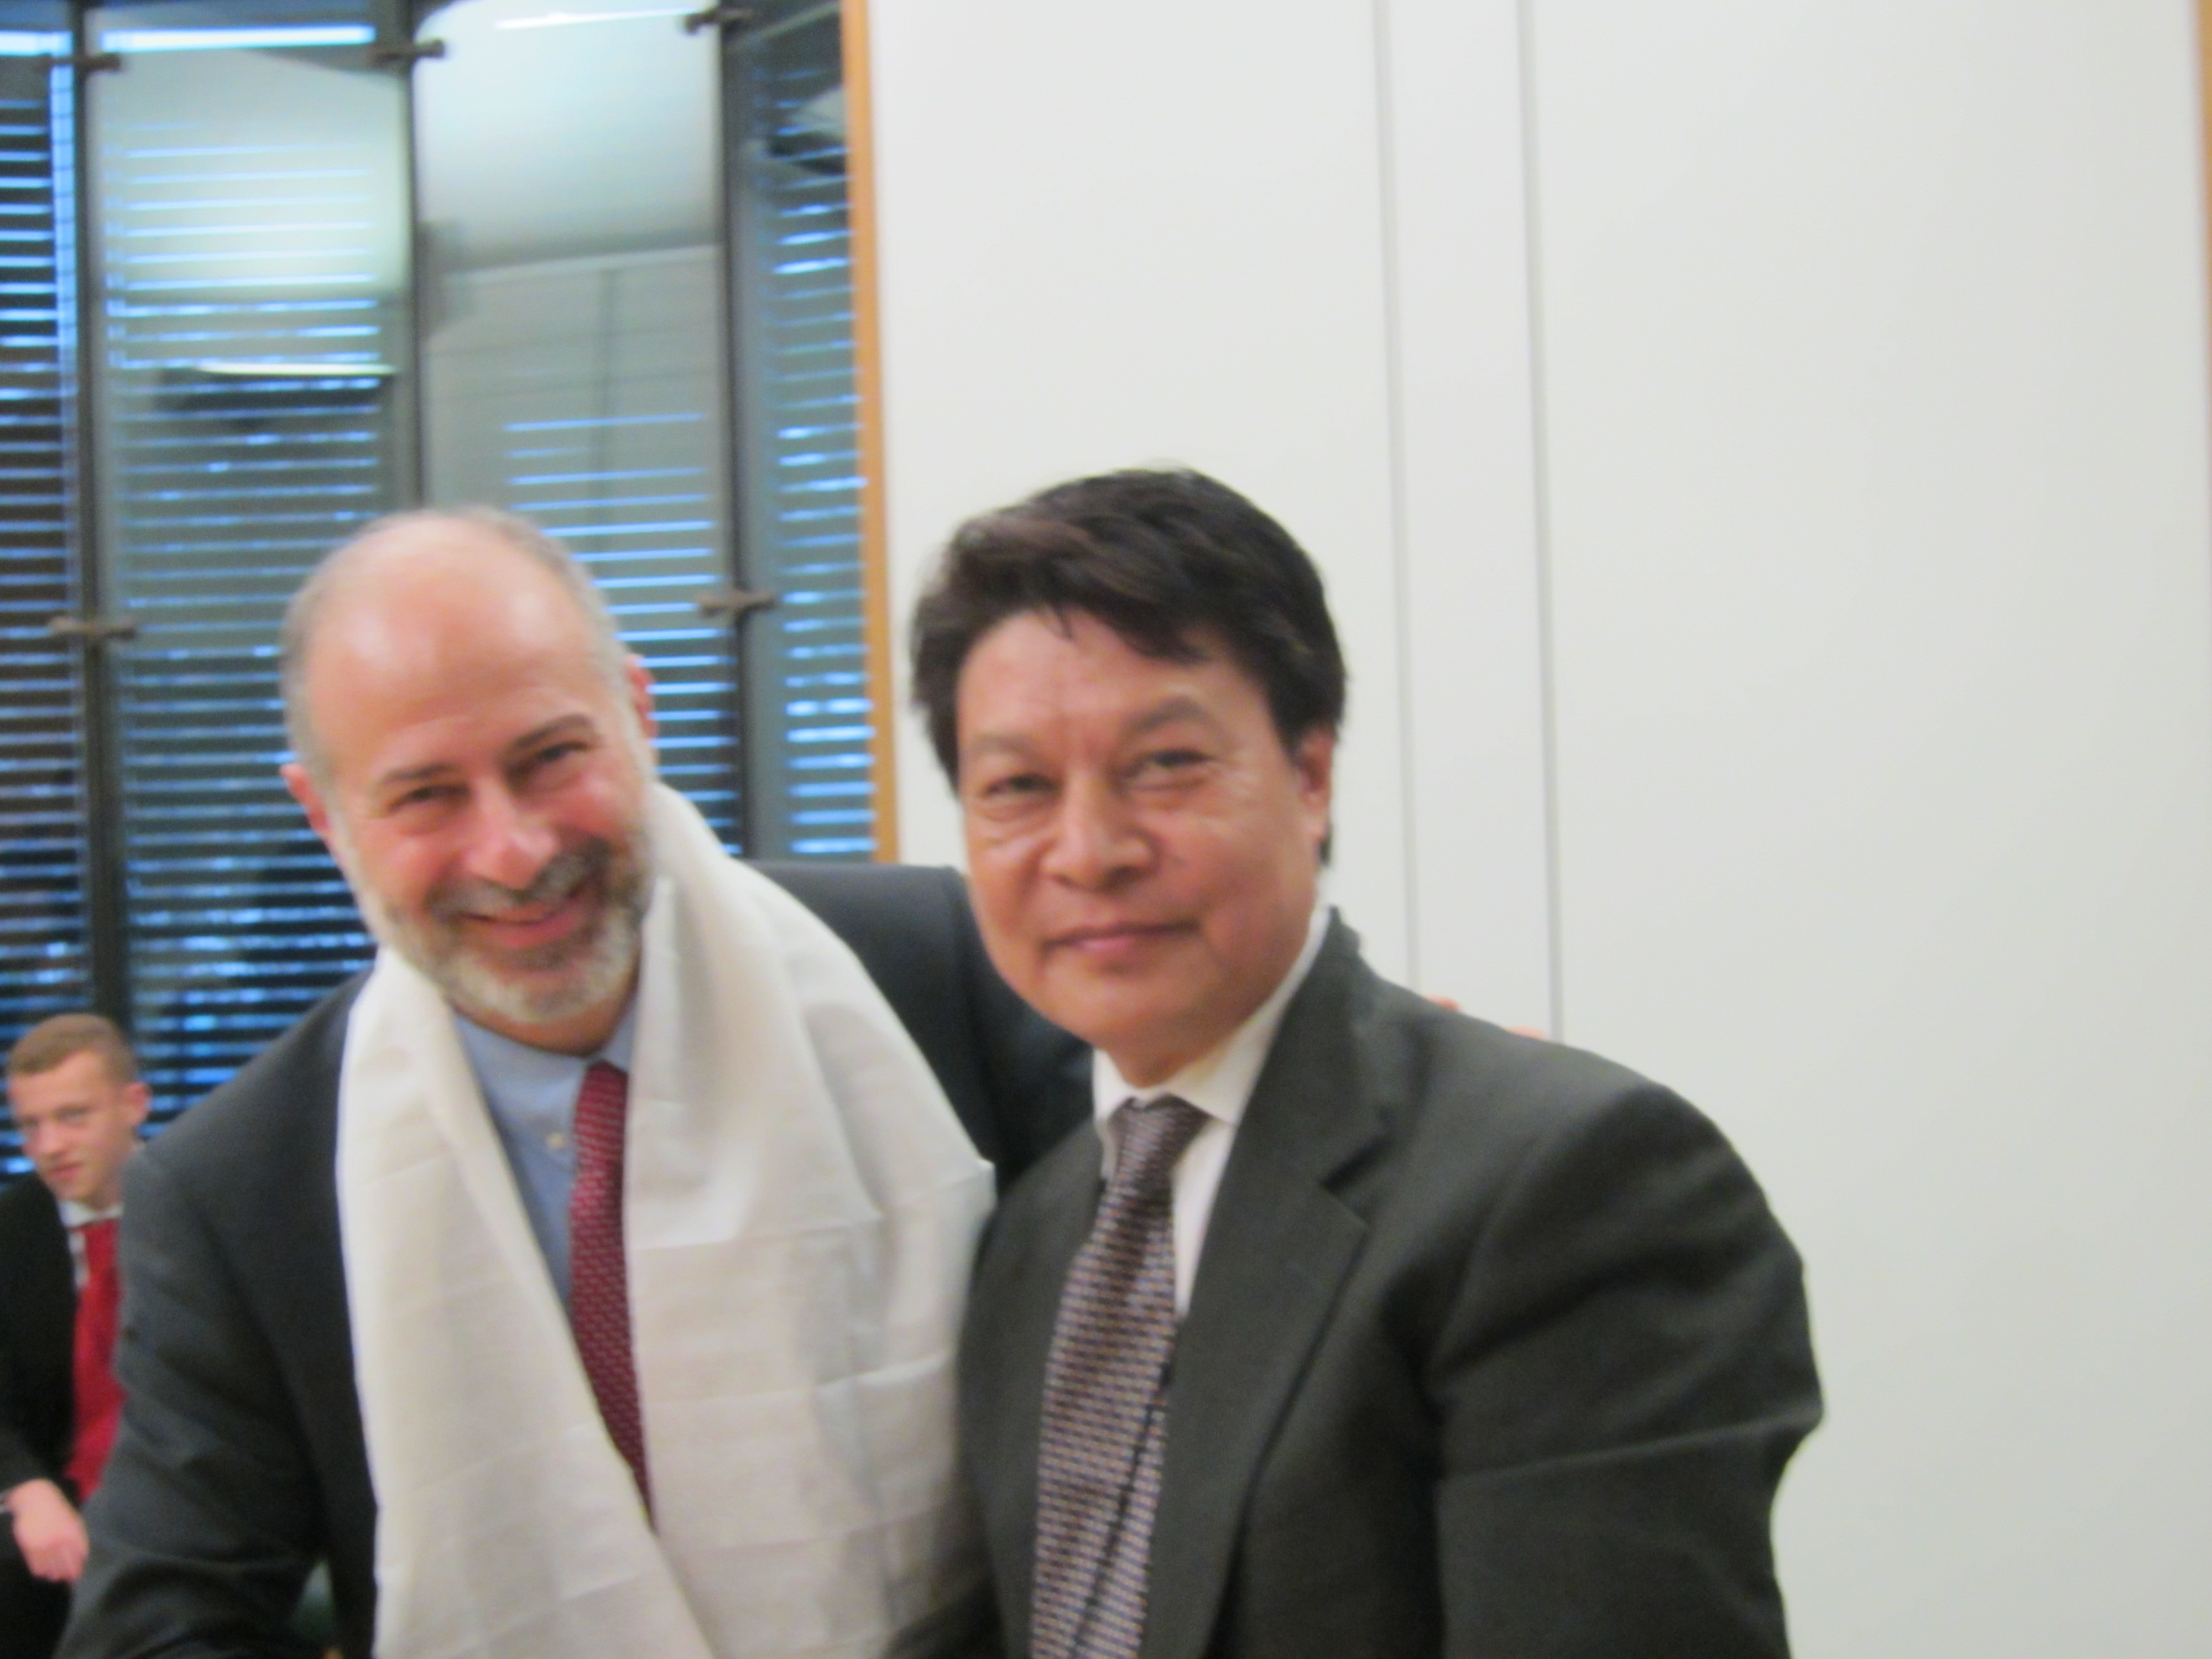 DIIR Secretary Tashi Phuntsok meets Mr Fiabian Hamilton, member of Parliament from the Labour Party, in London